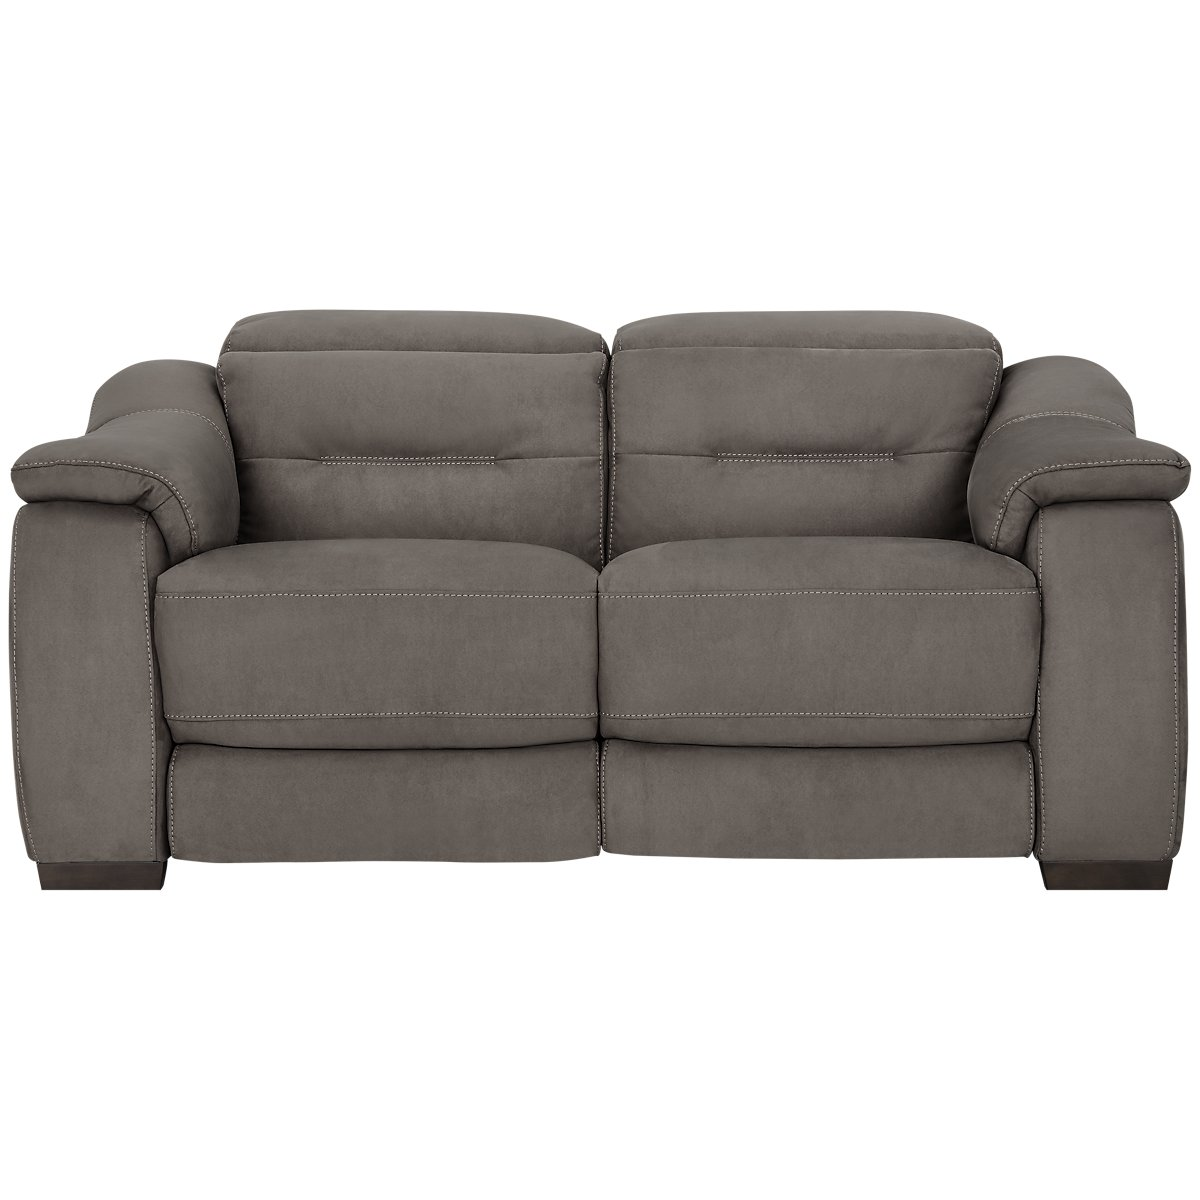 City Furniture Kent Dark Gray Microfiber Power Reclining